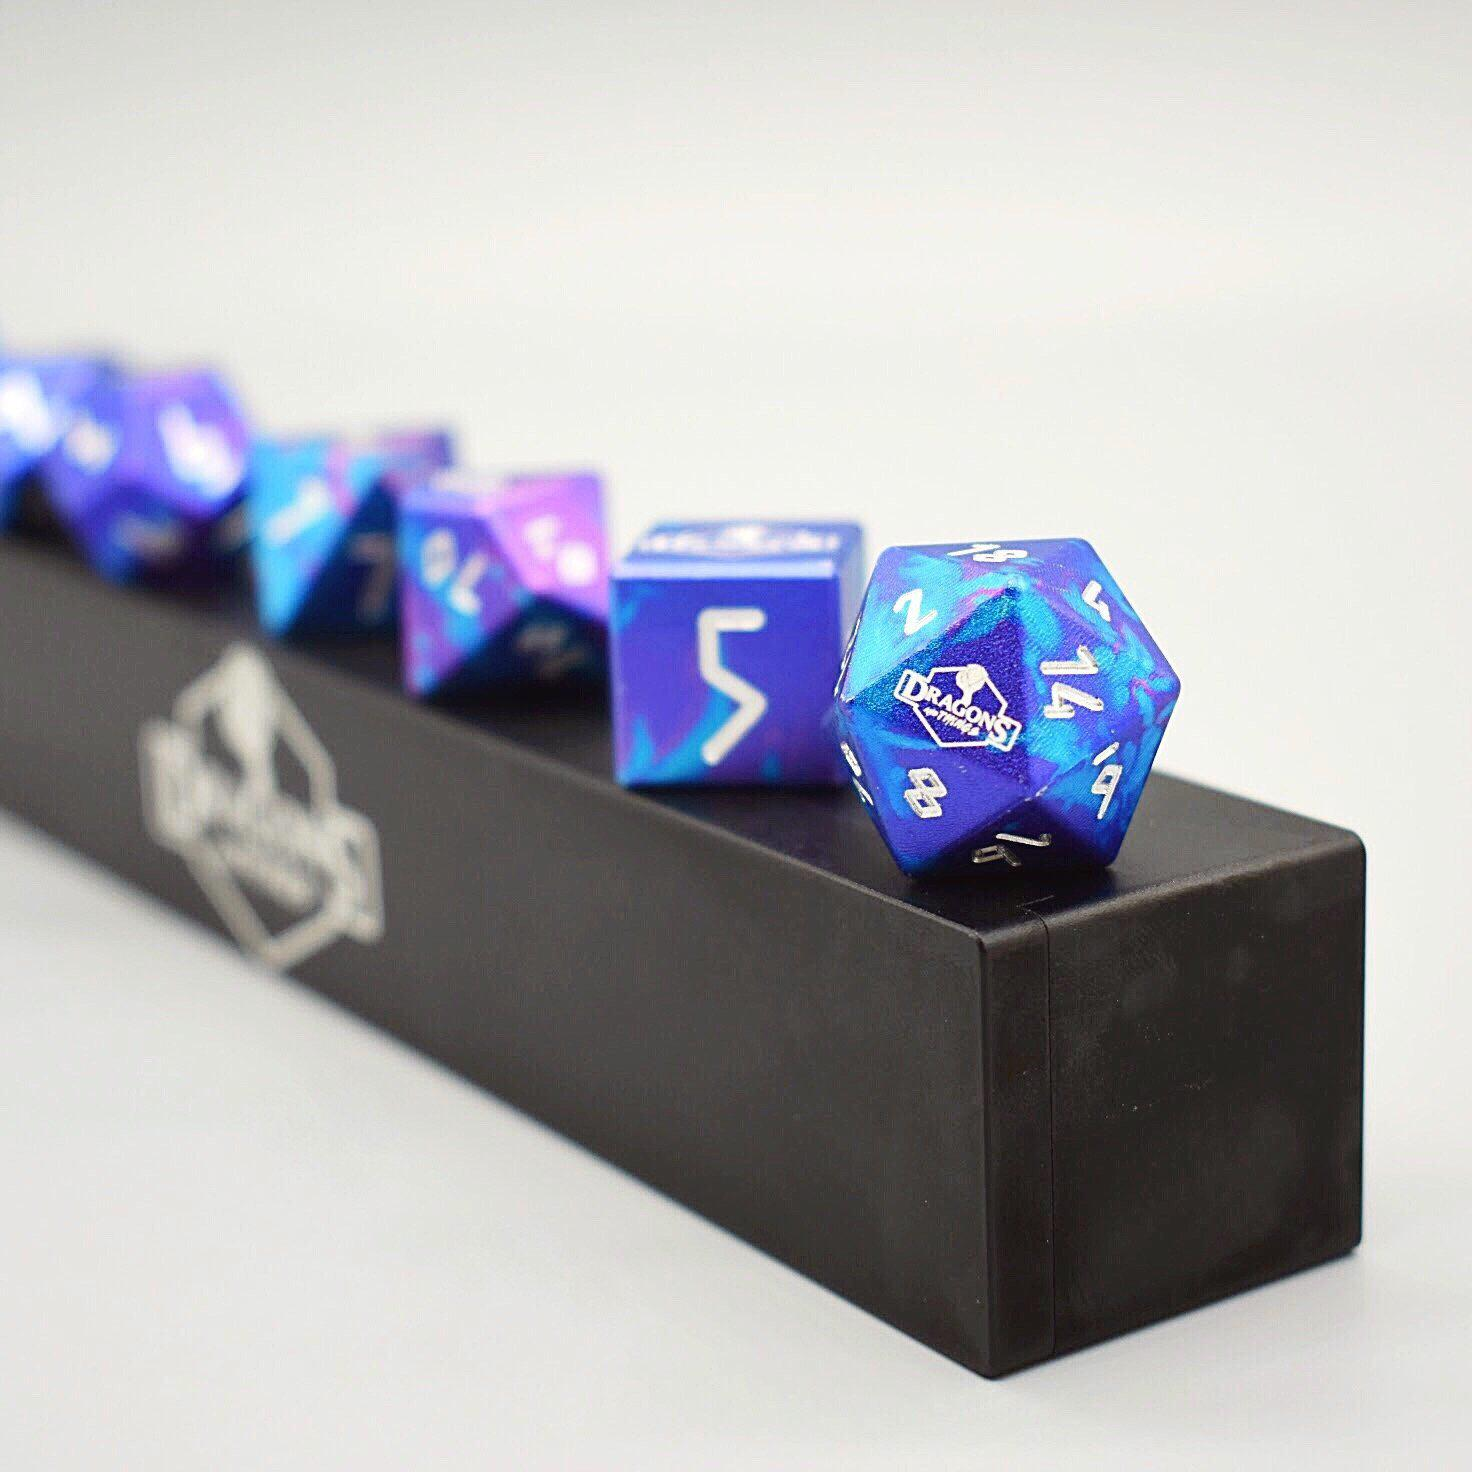 Dragons and Things Time Warp - Precision CNC Aluminum Dice Set with Dice Vault